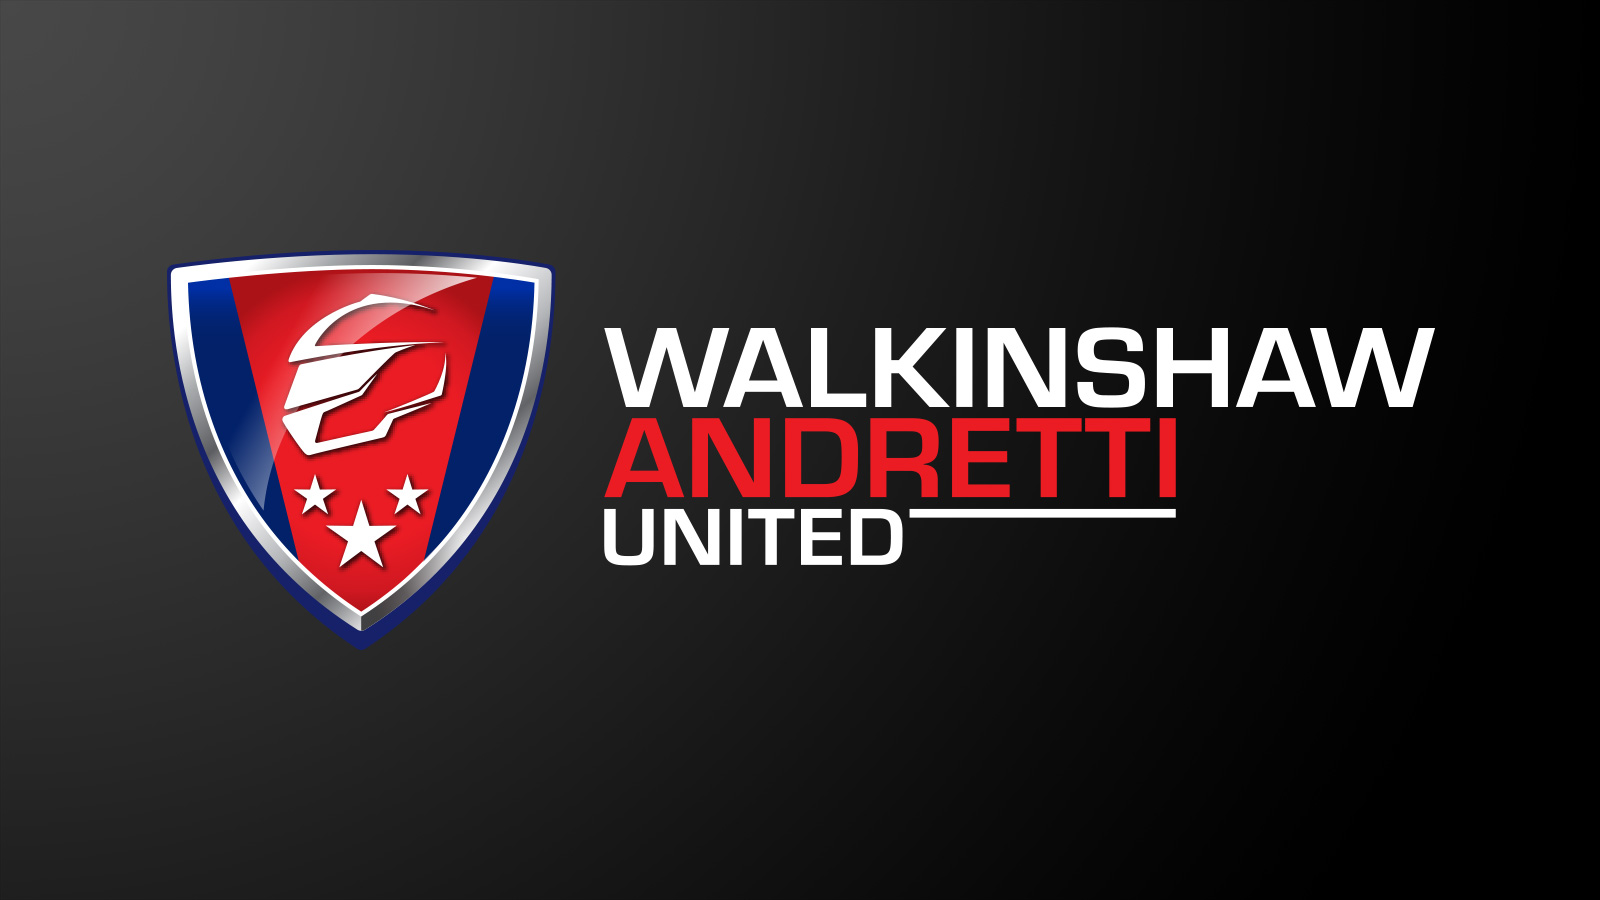 Walkinshaw Andretti United Logo Revealed